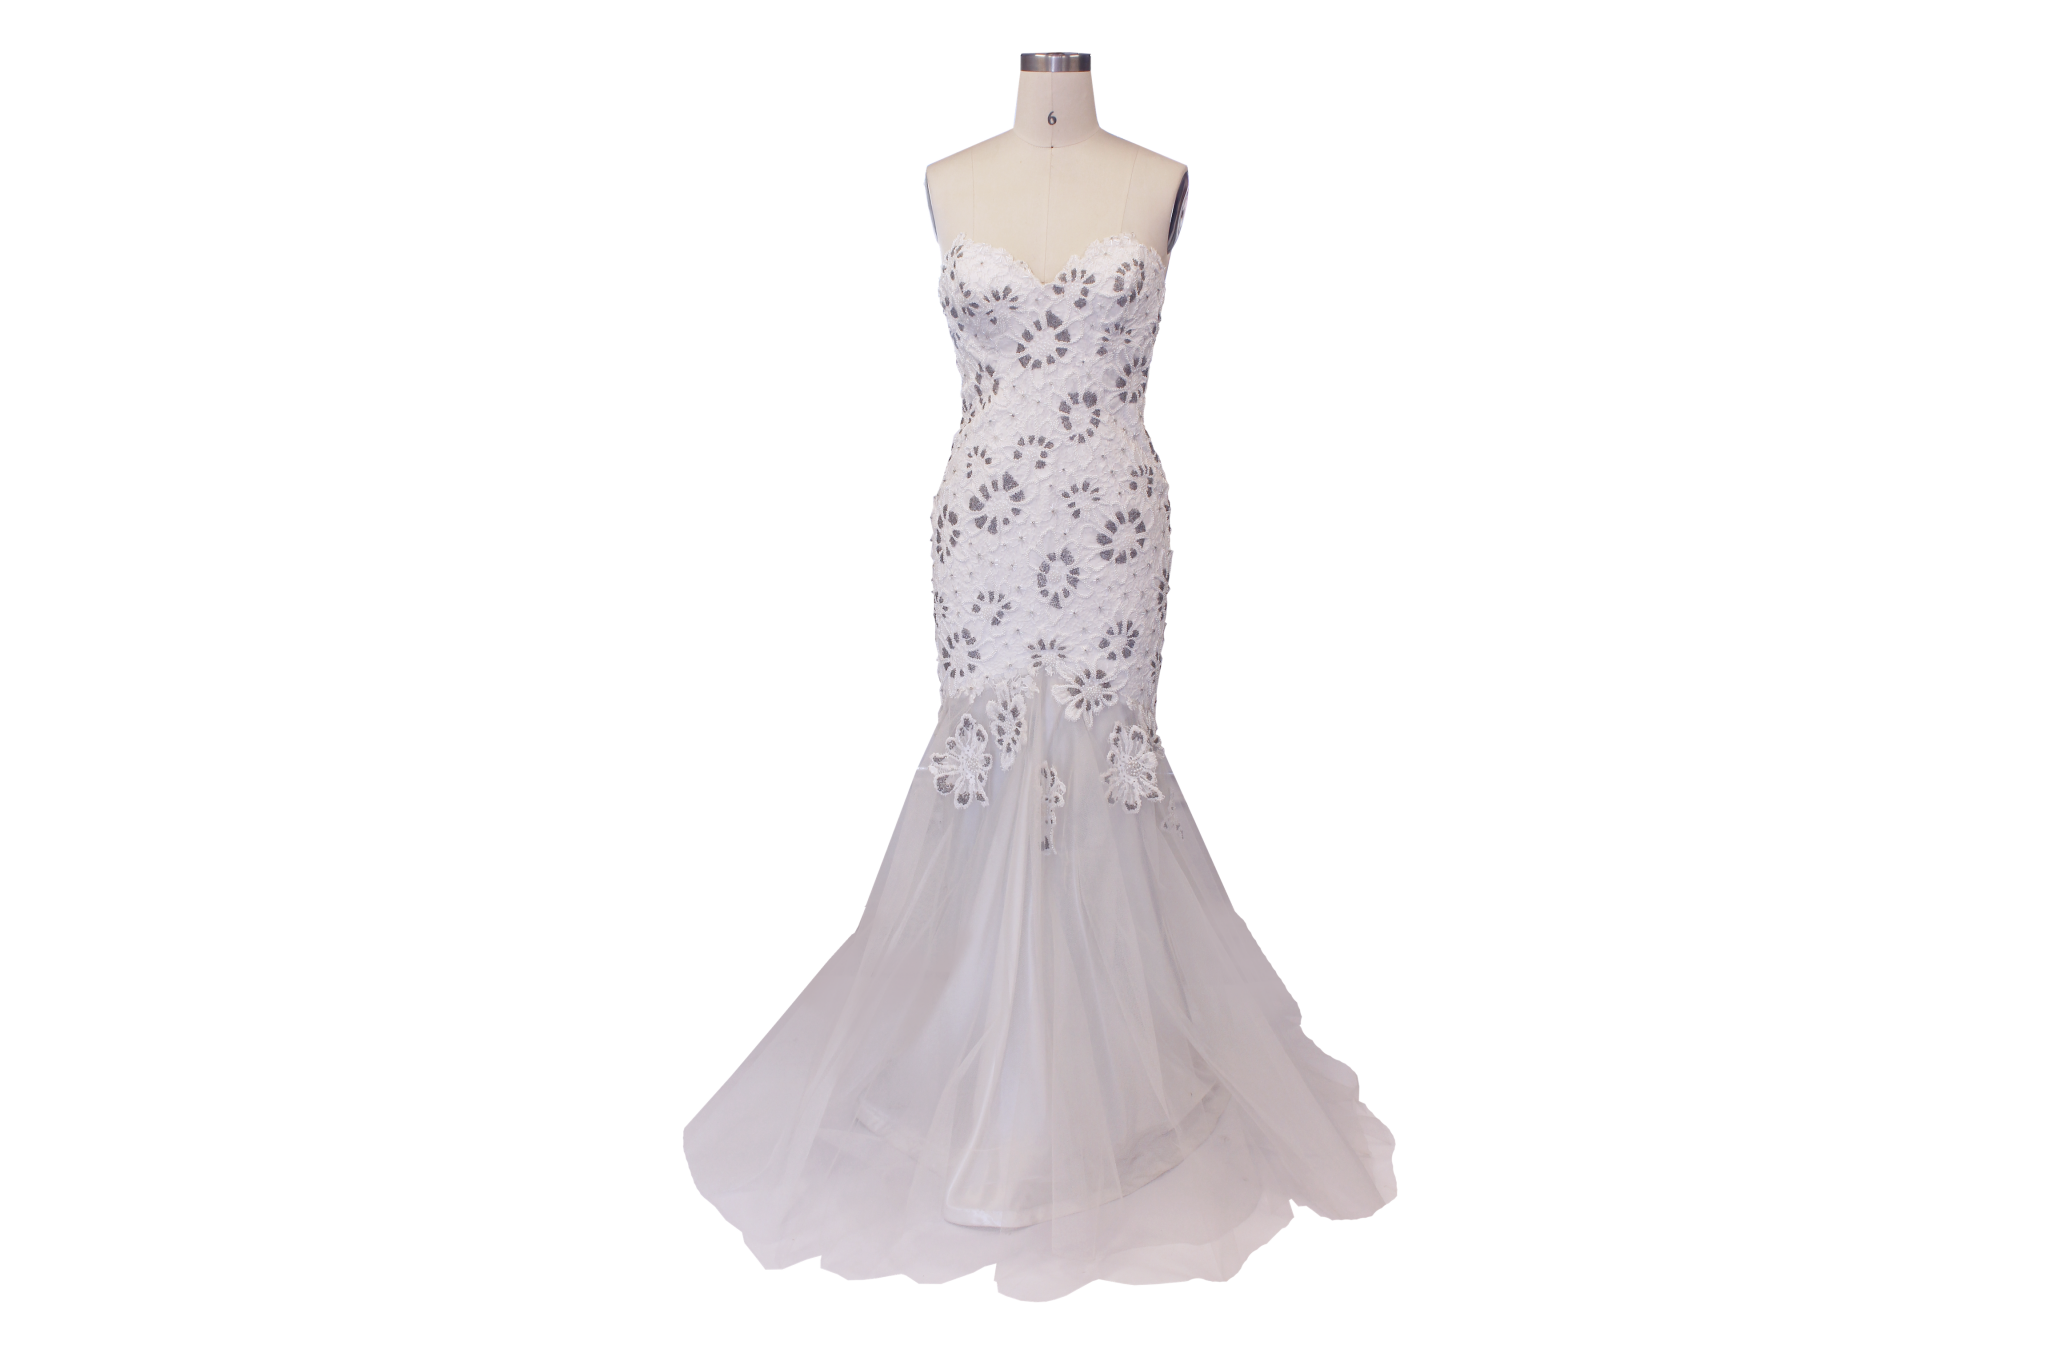 Strapless Mermaid Wedding Gown: Strapless Beaded Mermaid Silhouette Gown